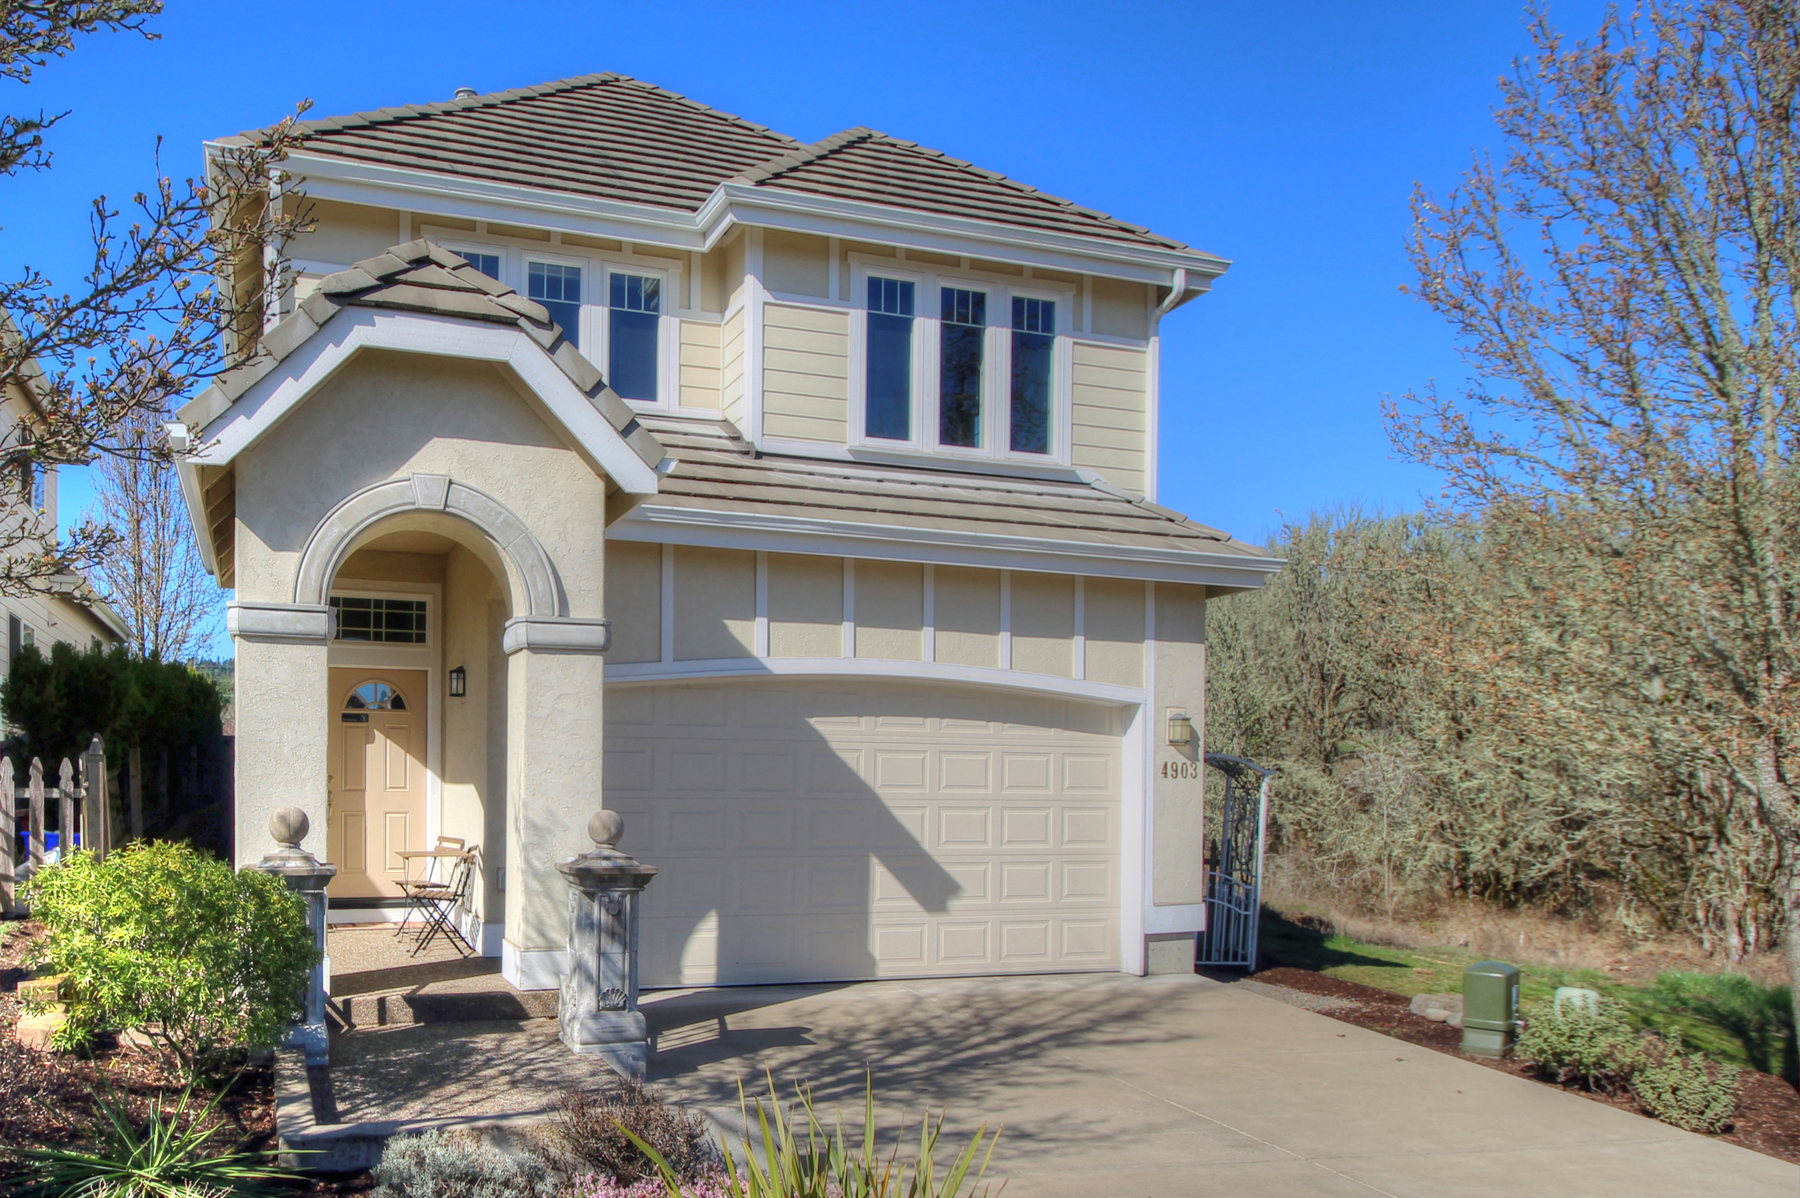 4903 NW Zinnia Place, Corvallis, Oregon 97330 | Northwest Corvallis Location